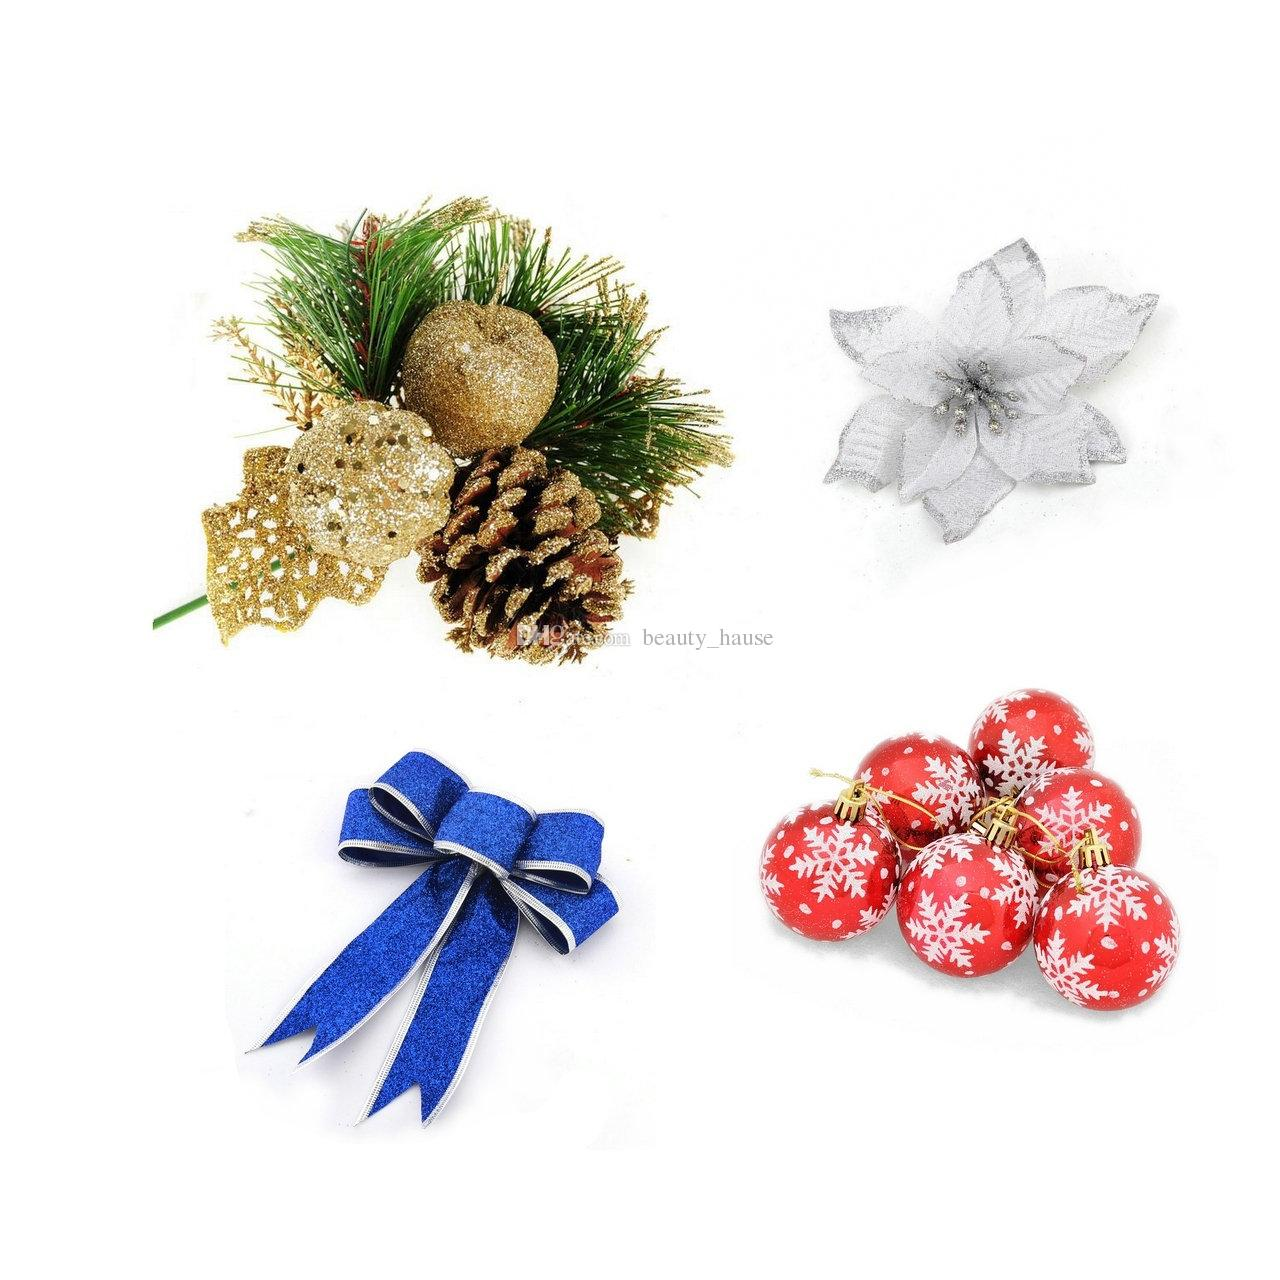 poinsettia christmas ballsartificial flowersbowknotspine cones ornaments for christmas tree decorations party supplies random color discount christmas